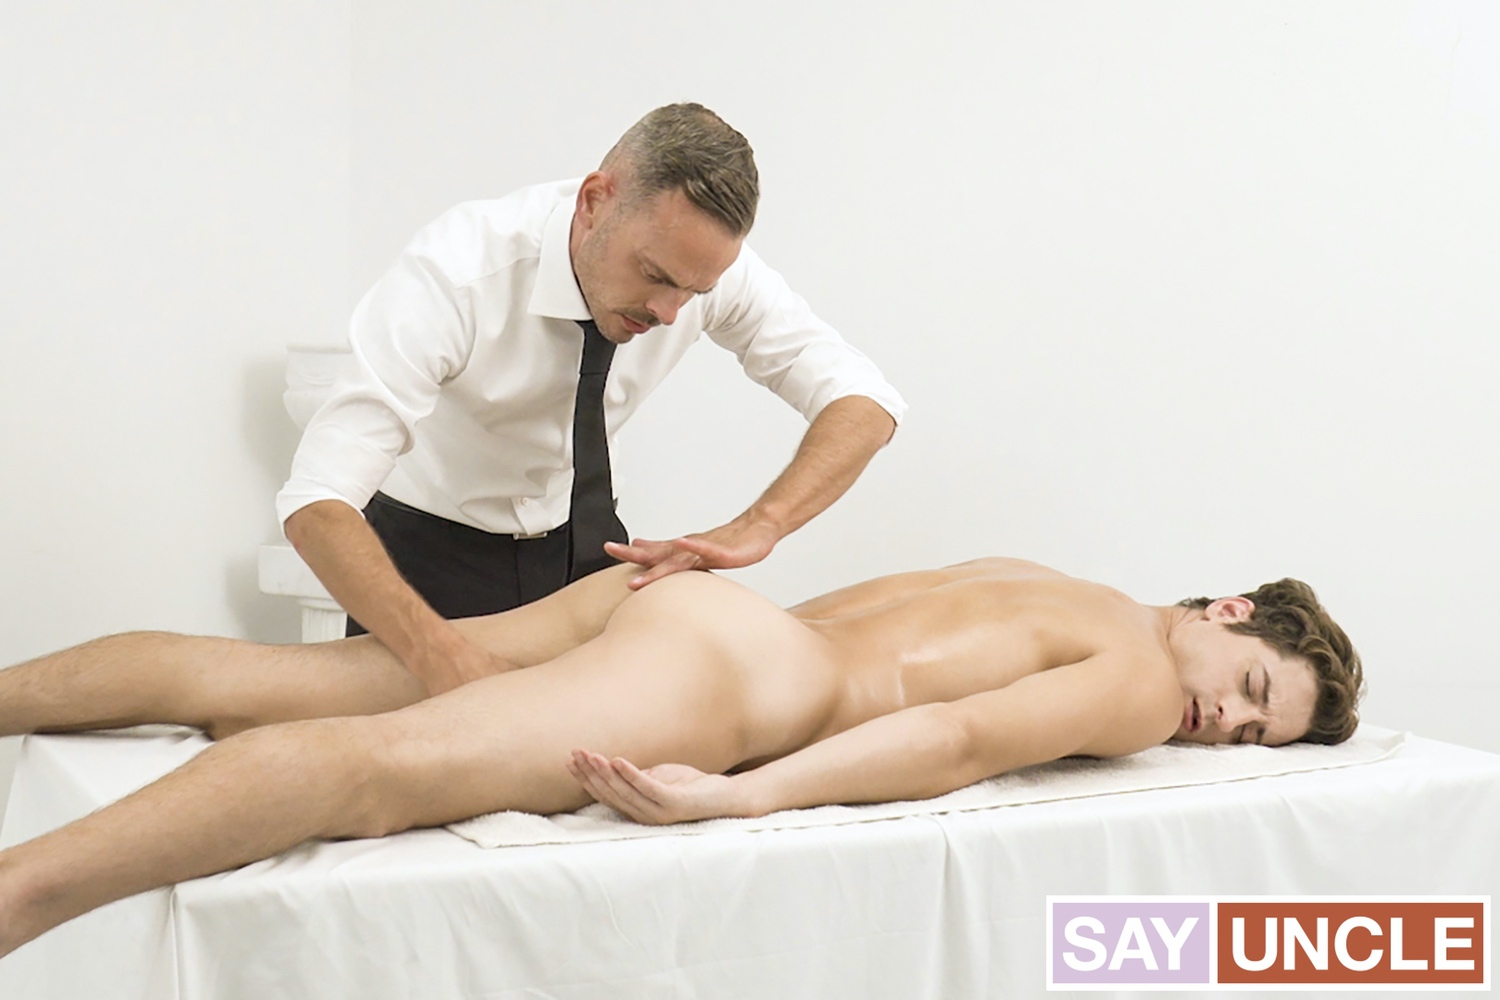 Missionary Boys – Taylor Reign, Trent Summers